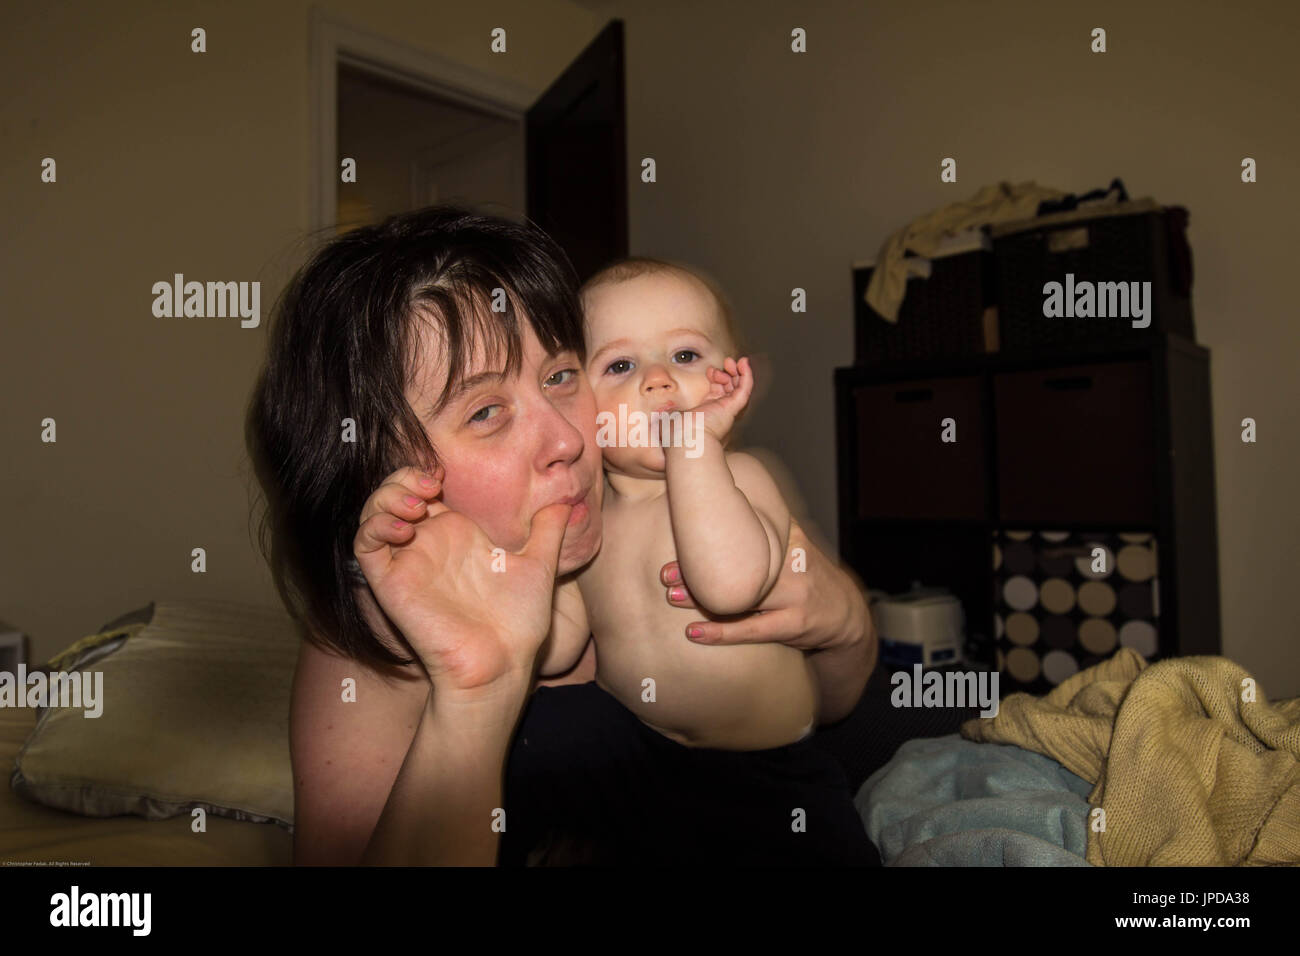 mom and thumb sucking baby - Stock Image